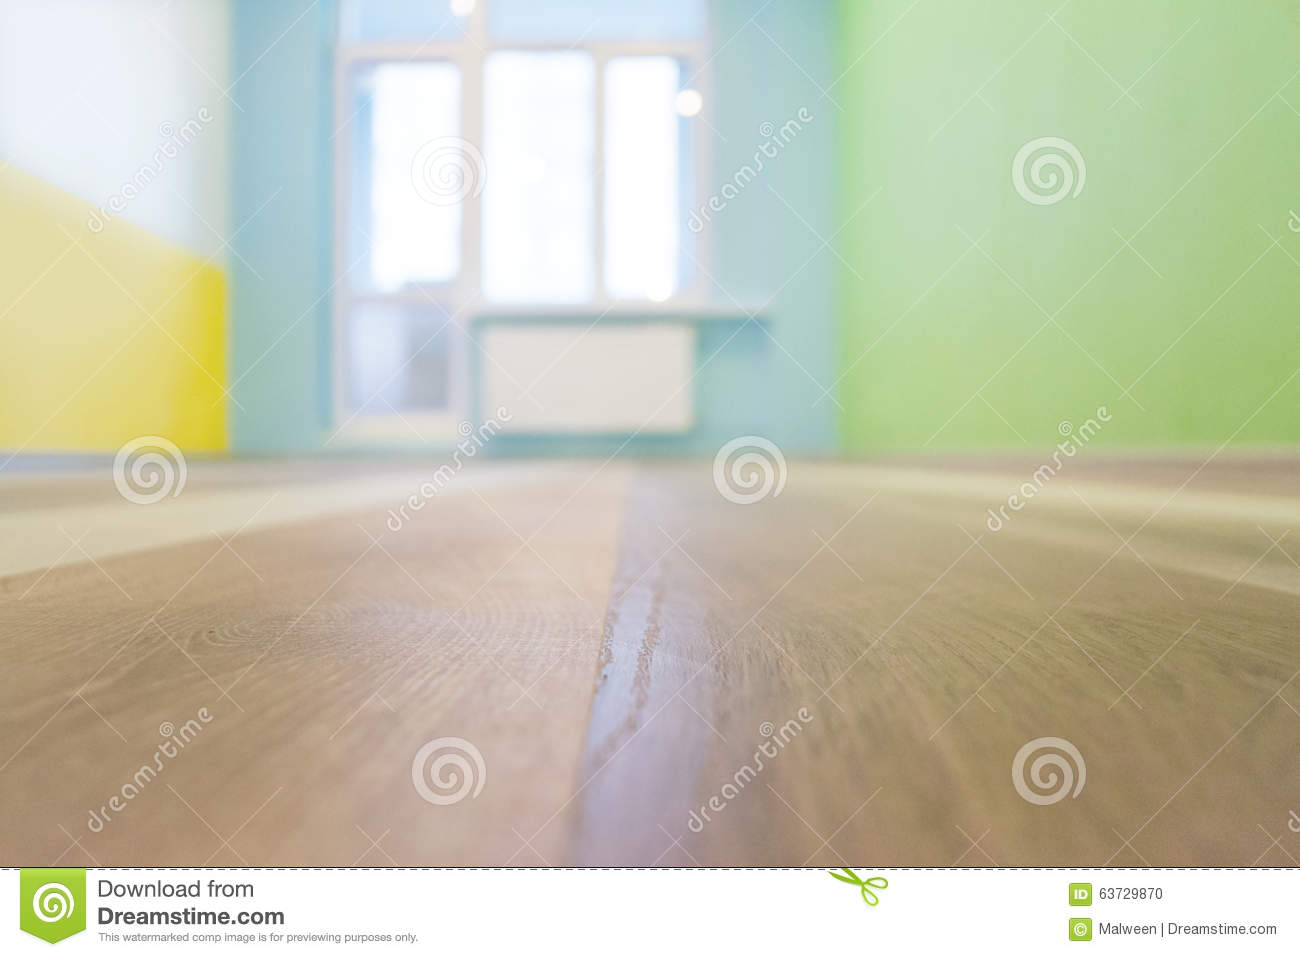 Empty kids room interior background with color walls, shallow depth of focus